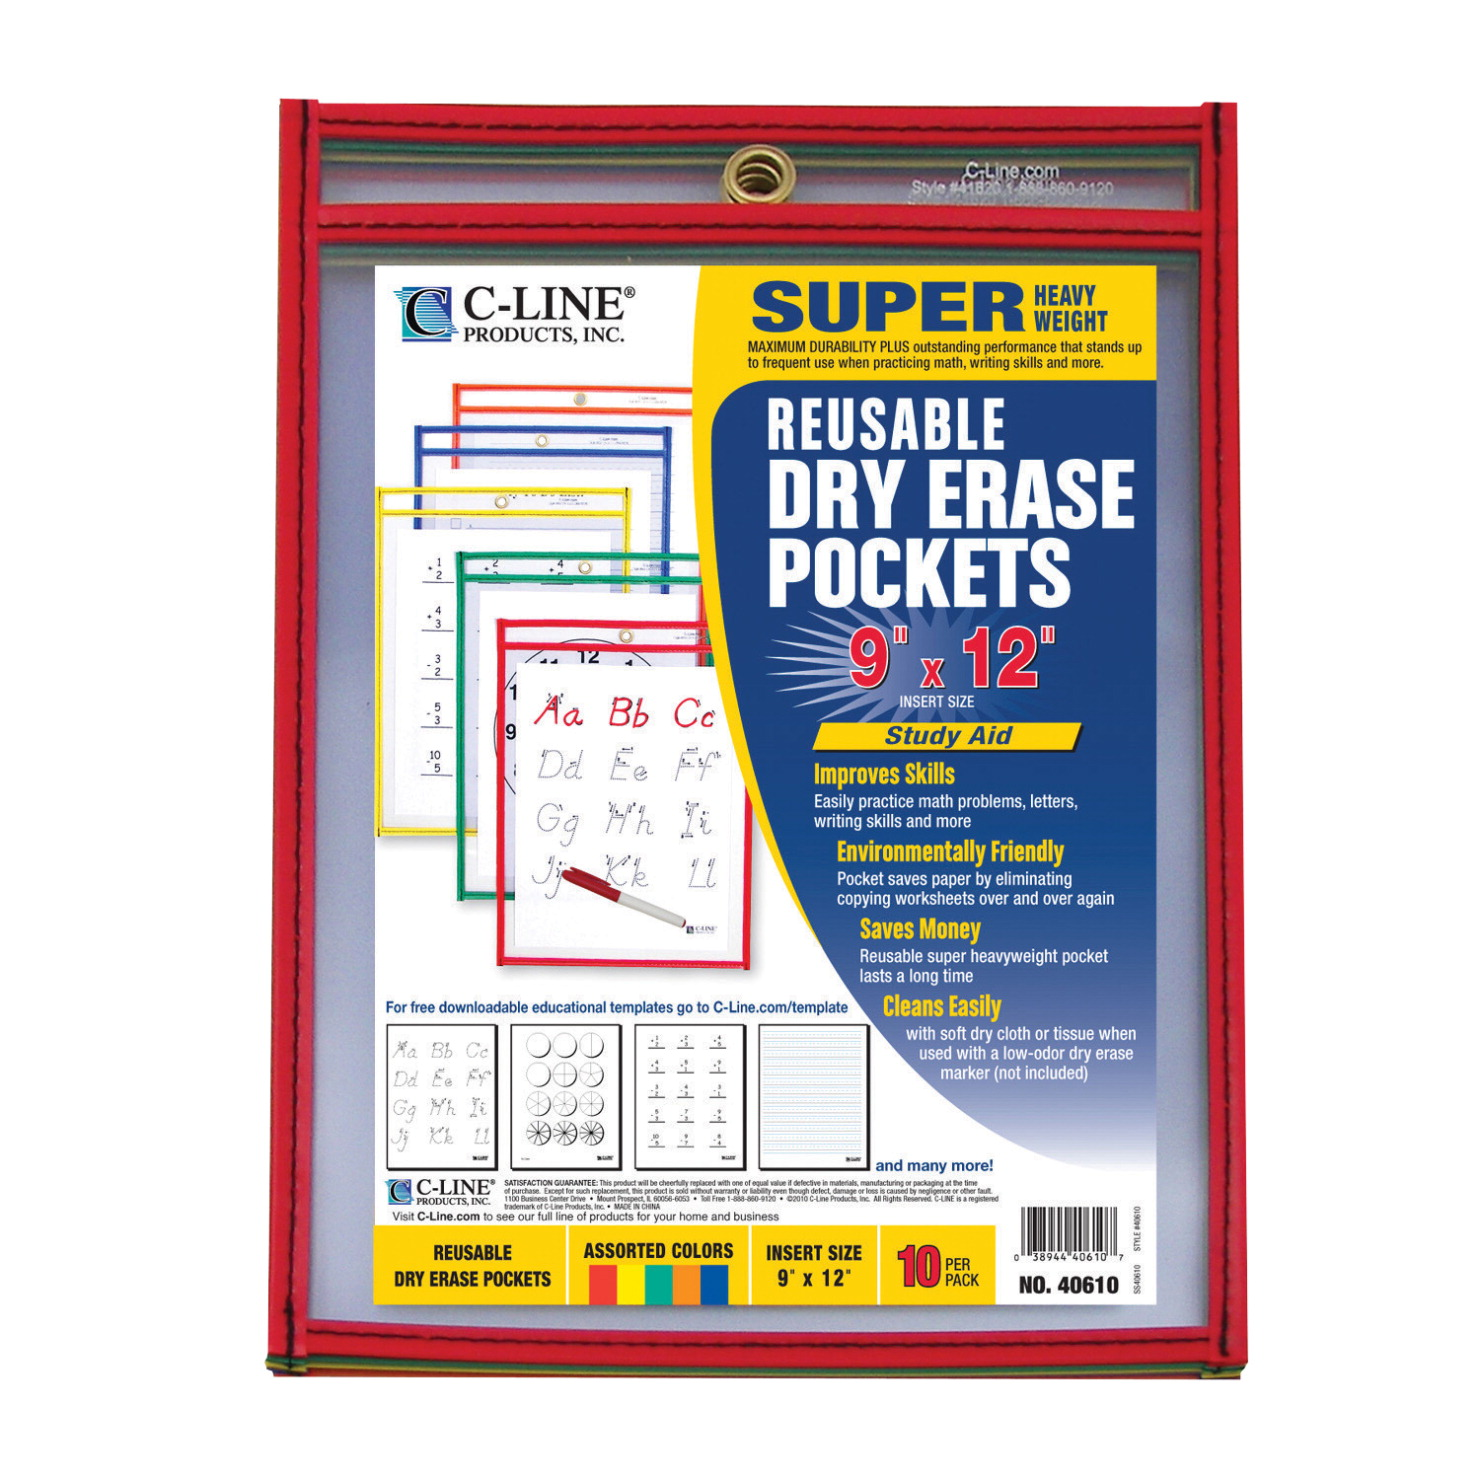 C-Line Dry Erase Pockets, Assorted Primary Colors, 9 x 12 Inches, Pack of 10